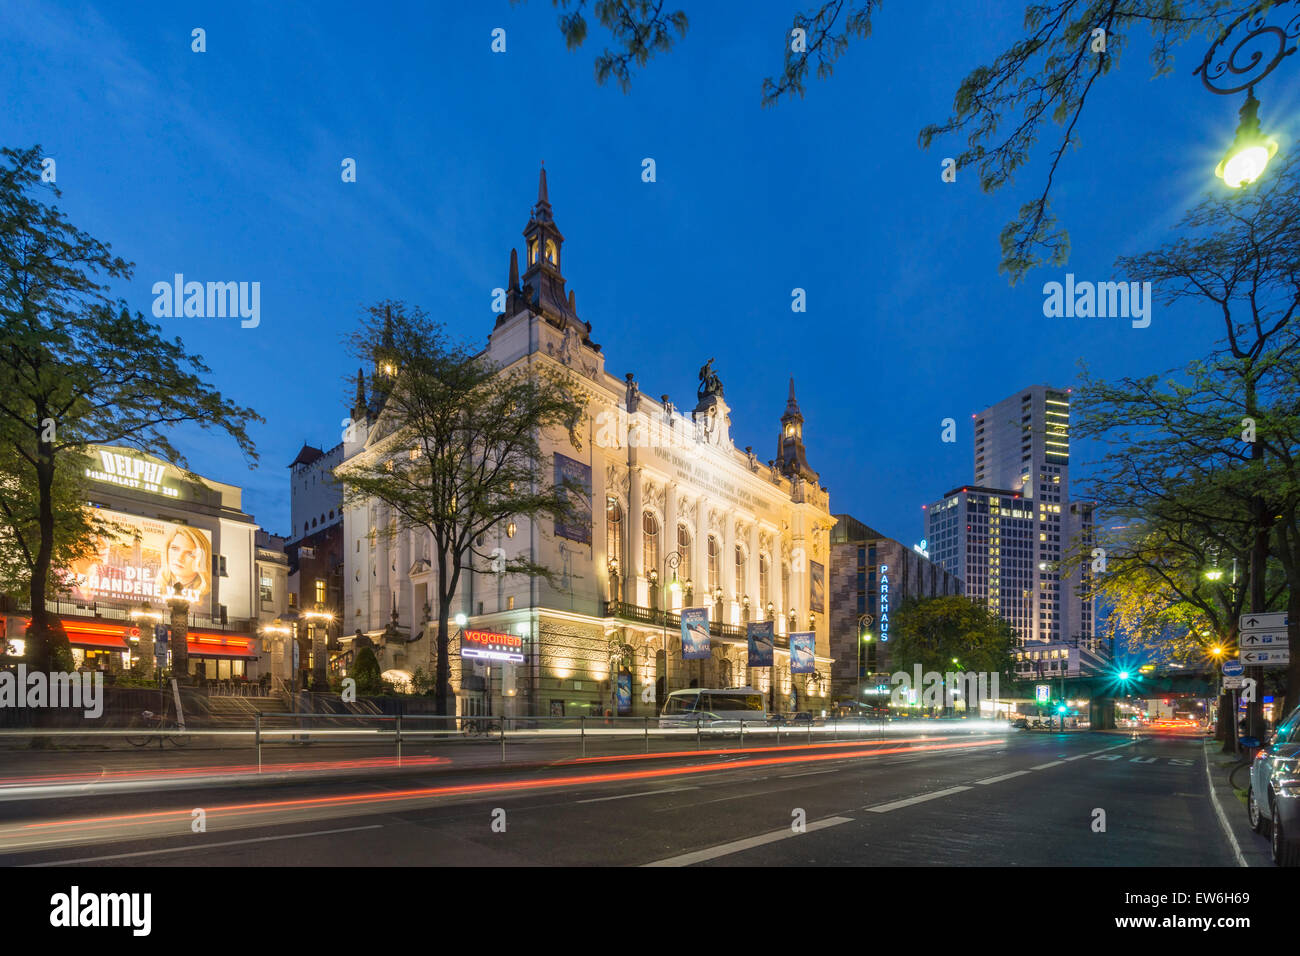 Delphi Cinema, Theater des Westens, Waldorf Astoria Hotel, Kant Street, City West, Berlin Stock Photo